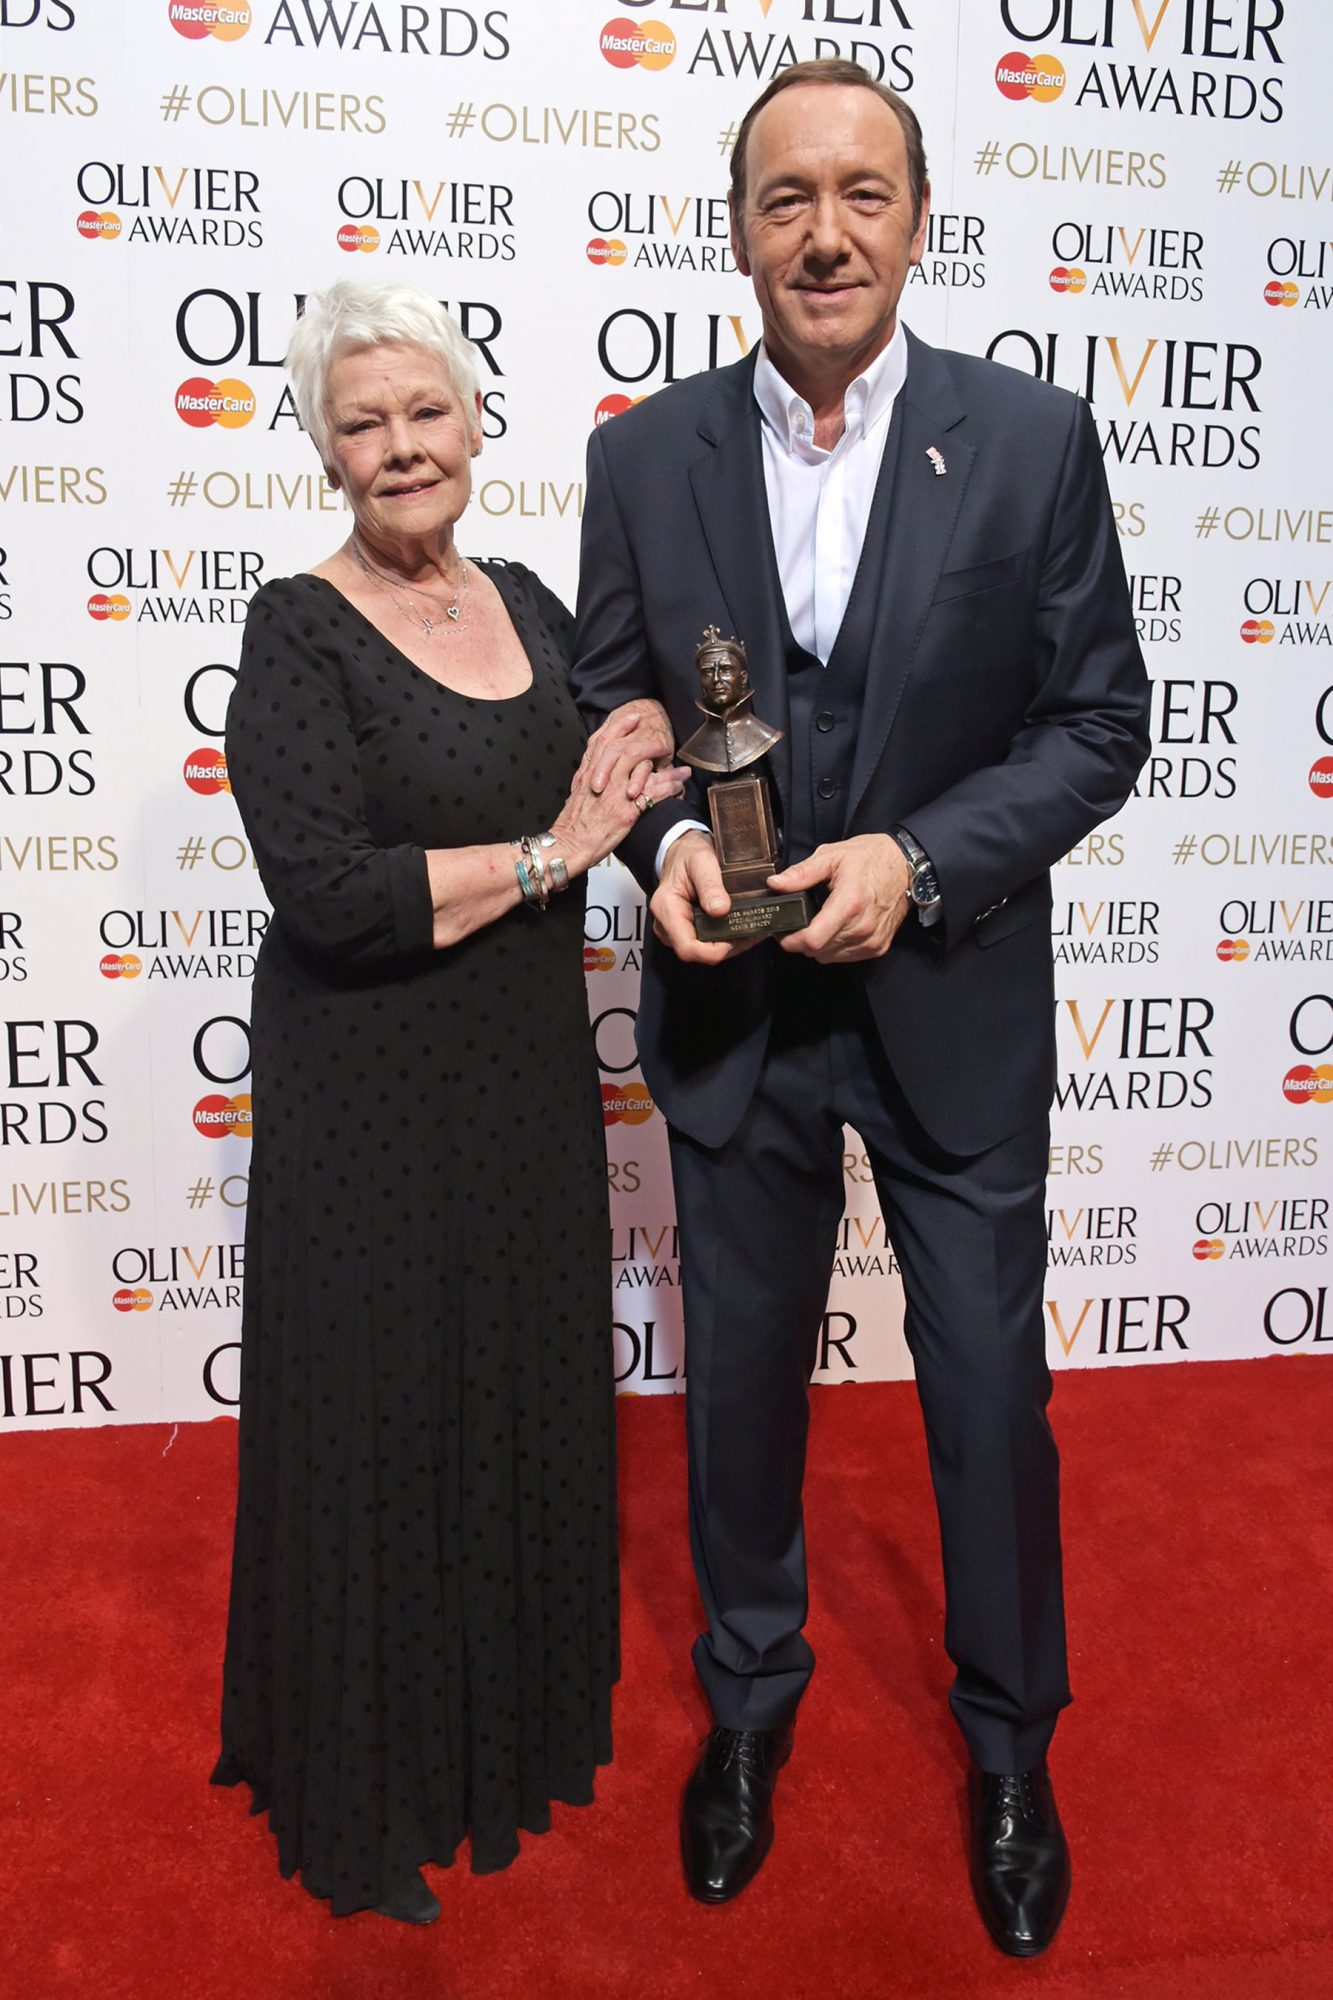 Judi Dench and Kevin Spacey